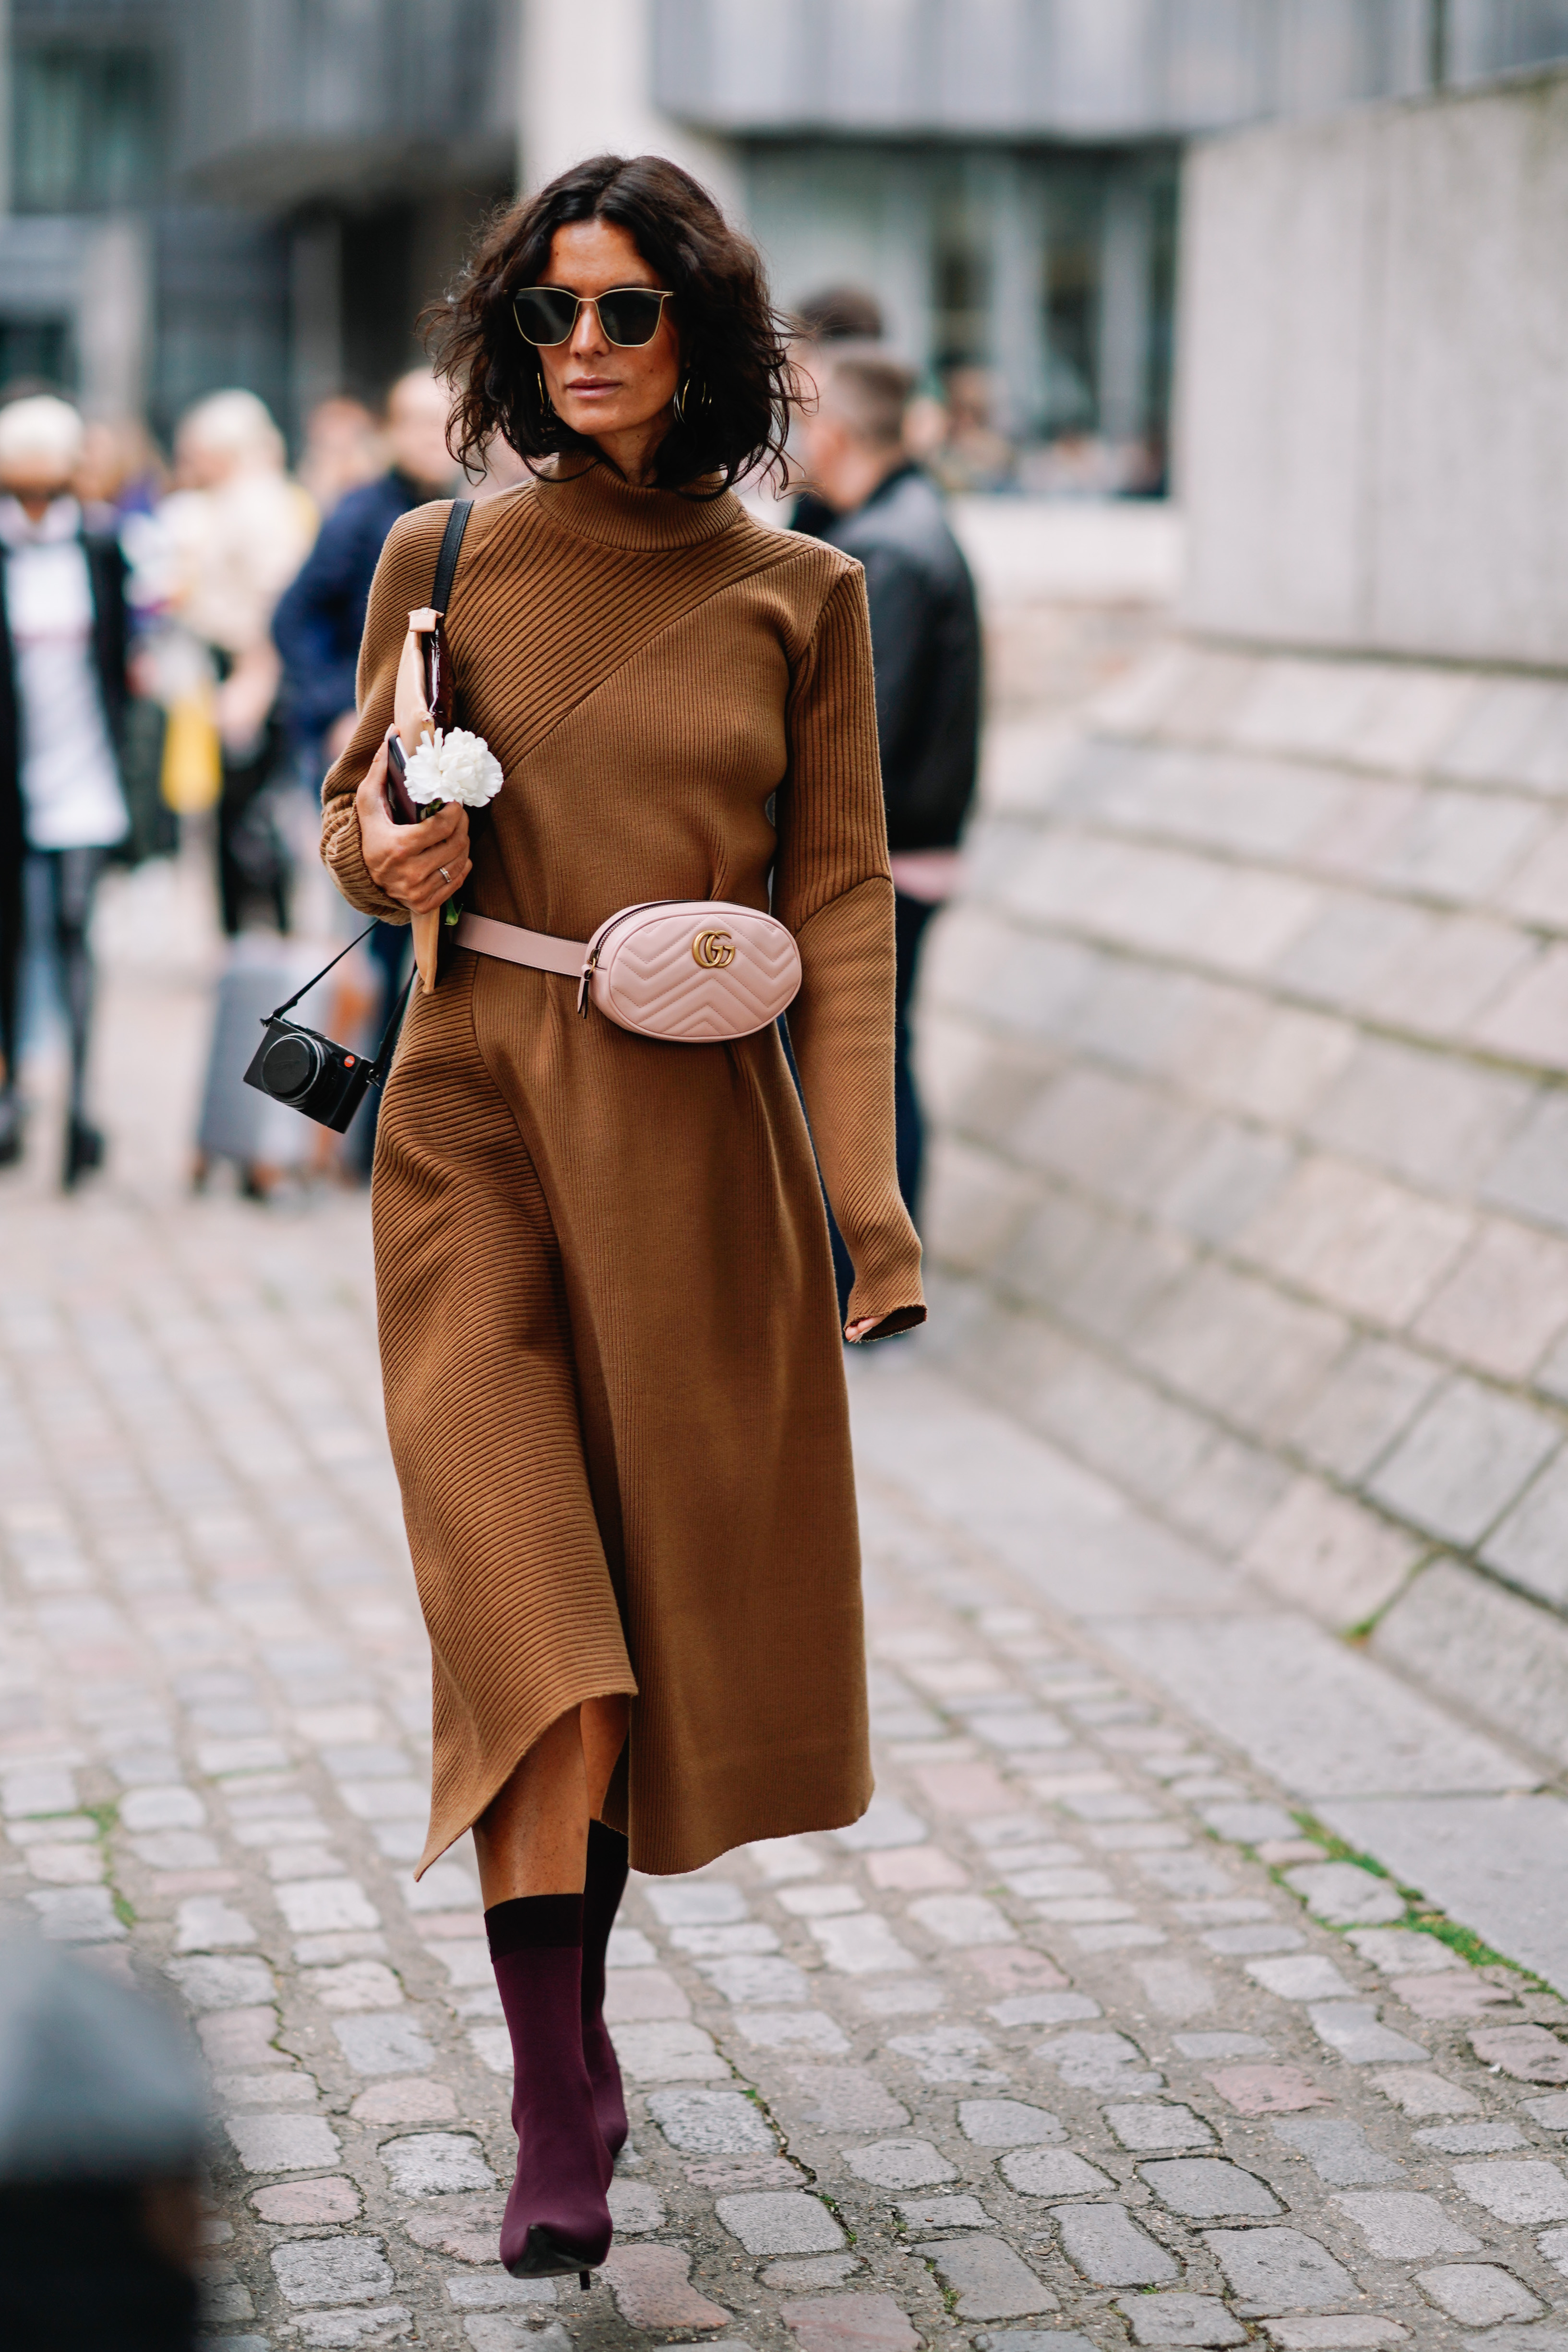 LONDON, ENGLAND - SEPTEMBER 17: Hedvig Opshaug wears a brown dress and a Gucci bag, outside Preen by Thornton Bregazzi, during London Fashion Week September 2017 on September 17, 2017 in London, England. (Photo by Edward Berthelot/Getty Images)